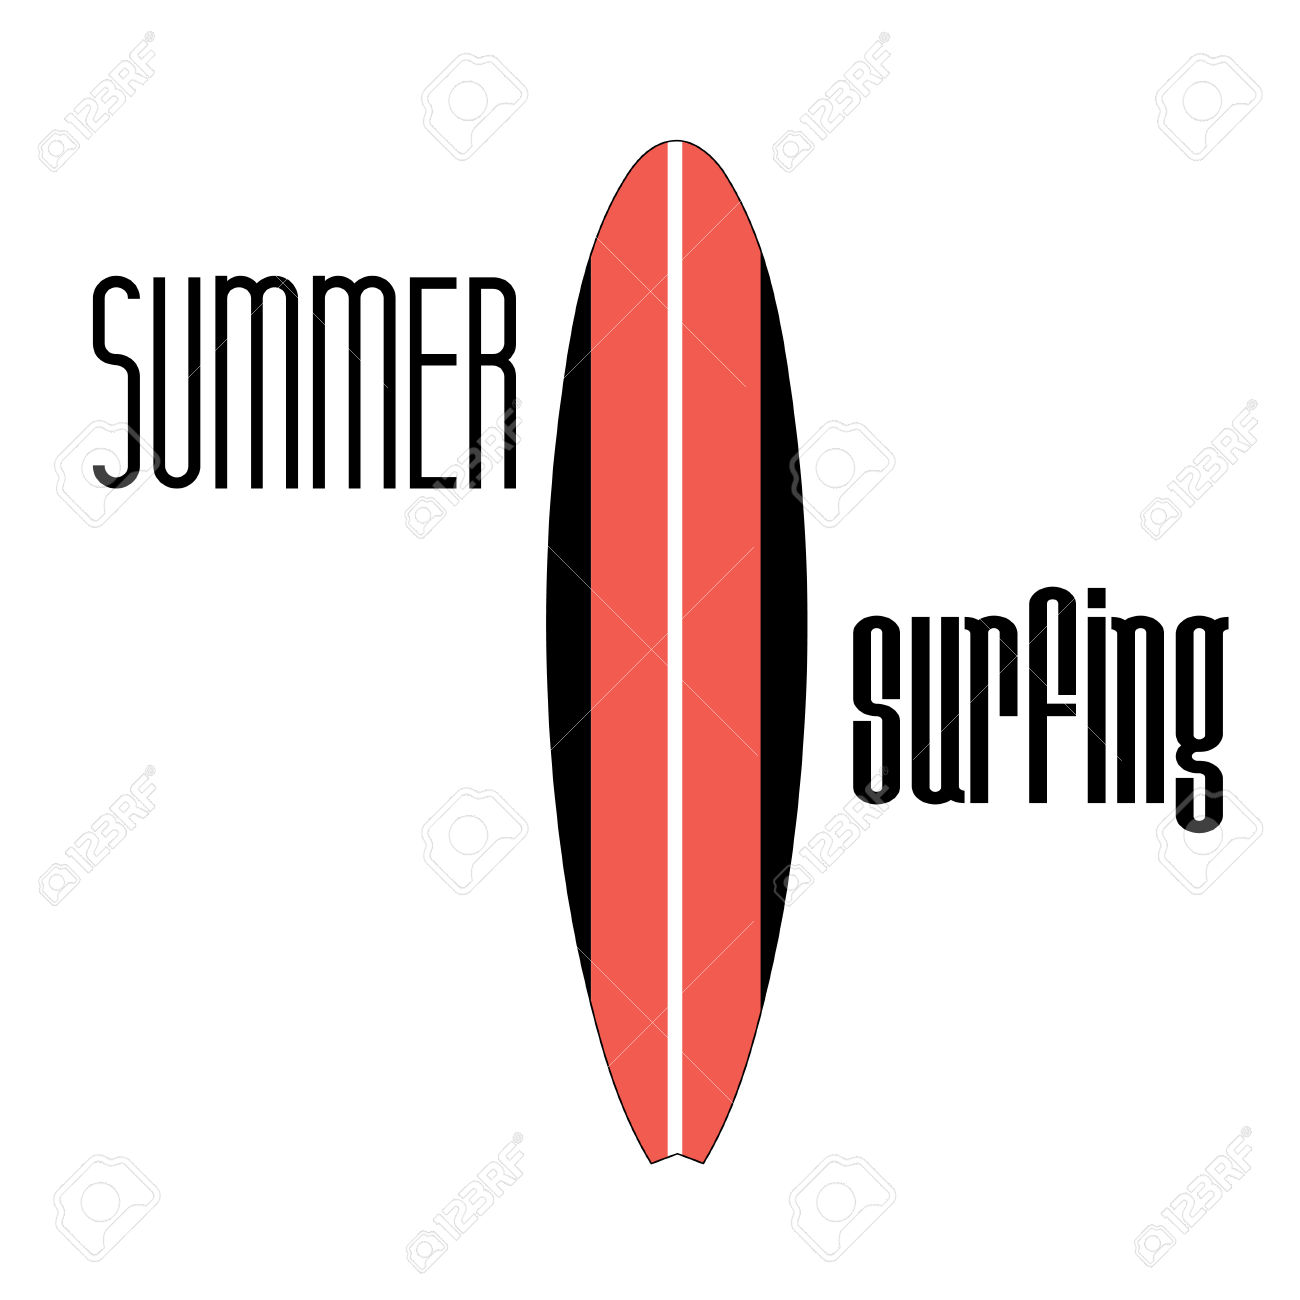 Surfboard signs background clipart vector freeuse library Graphic Sign Surfboard On A White Background Royalty Free Cliparts ... vector freeuse library